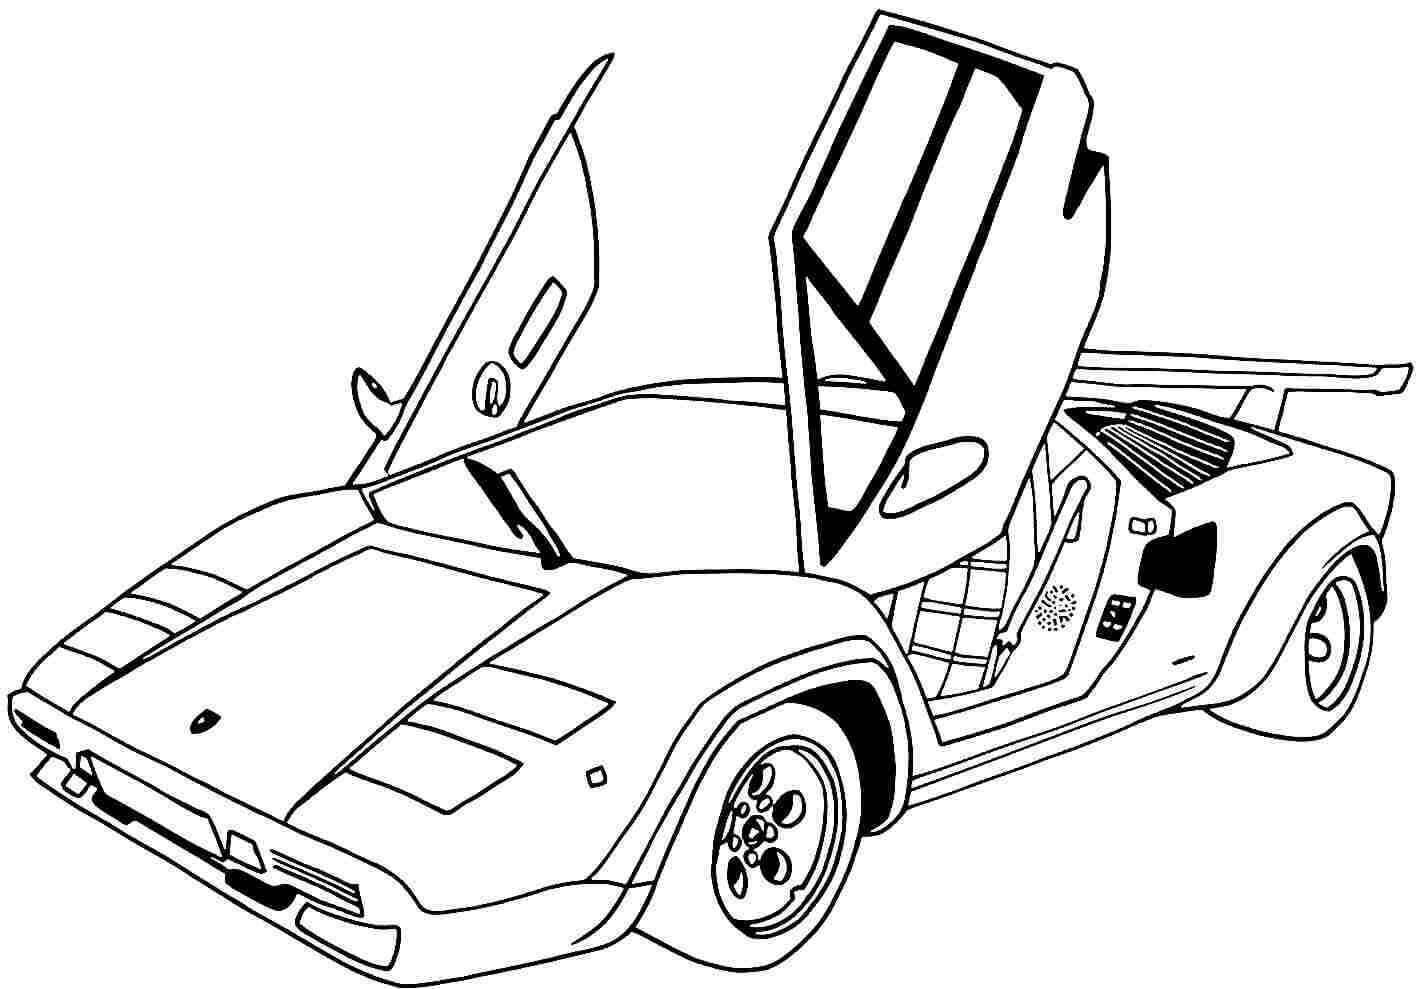 colouring in pictures of cars car coloring pages best coloring pages for kids pictures cars in colouring of